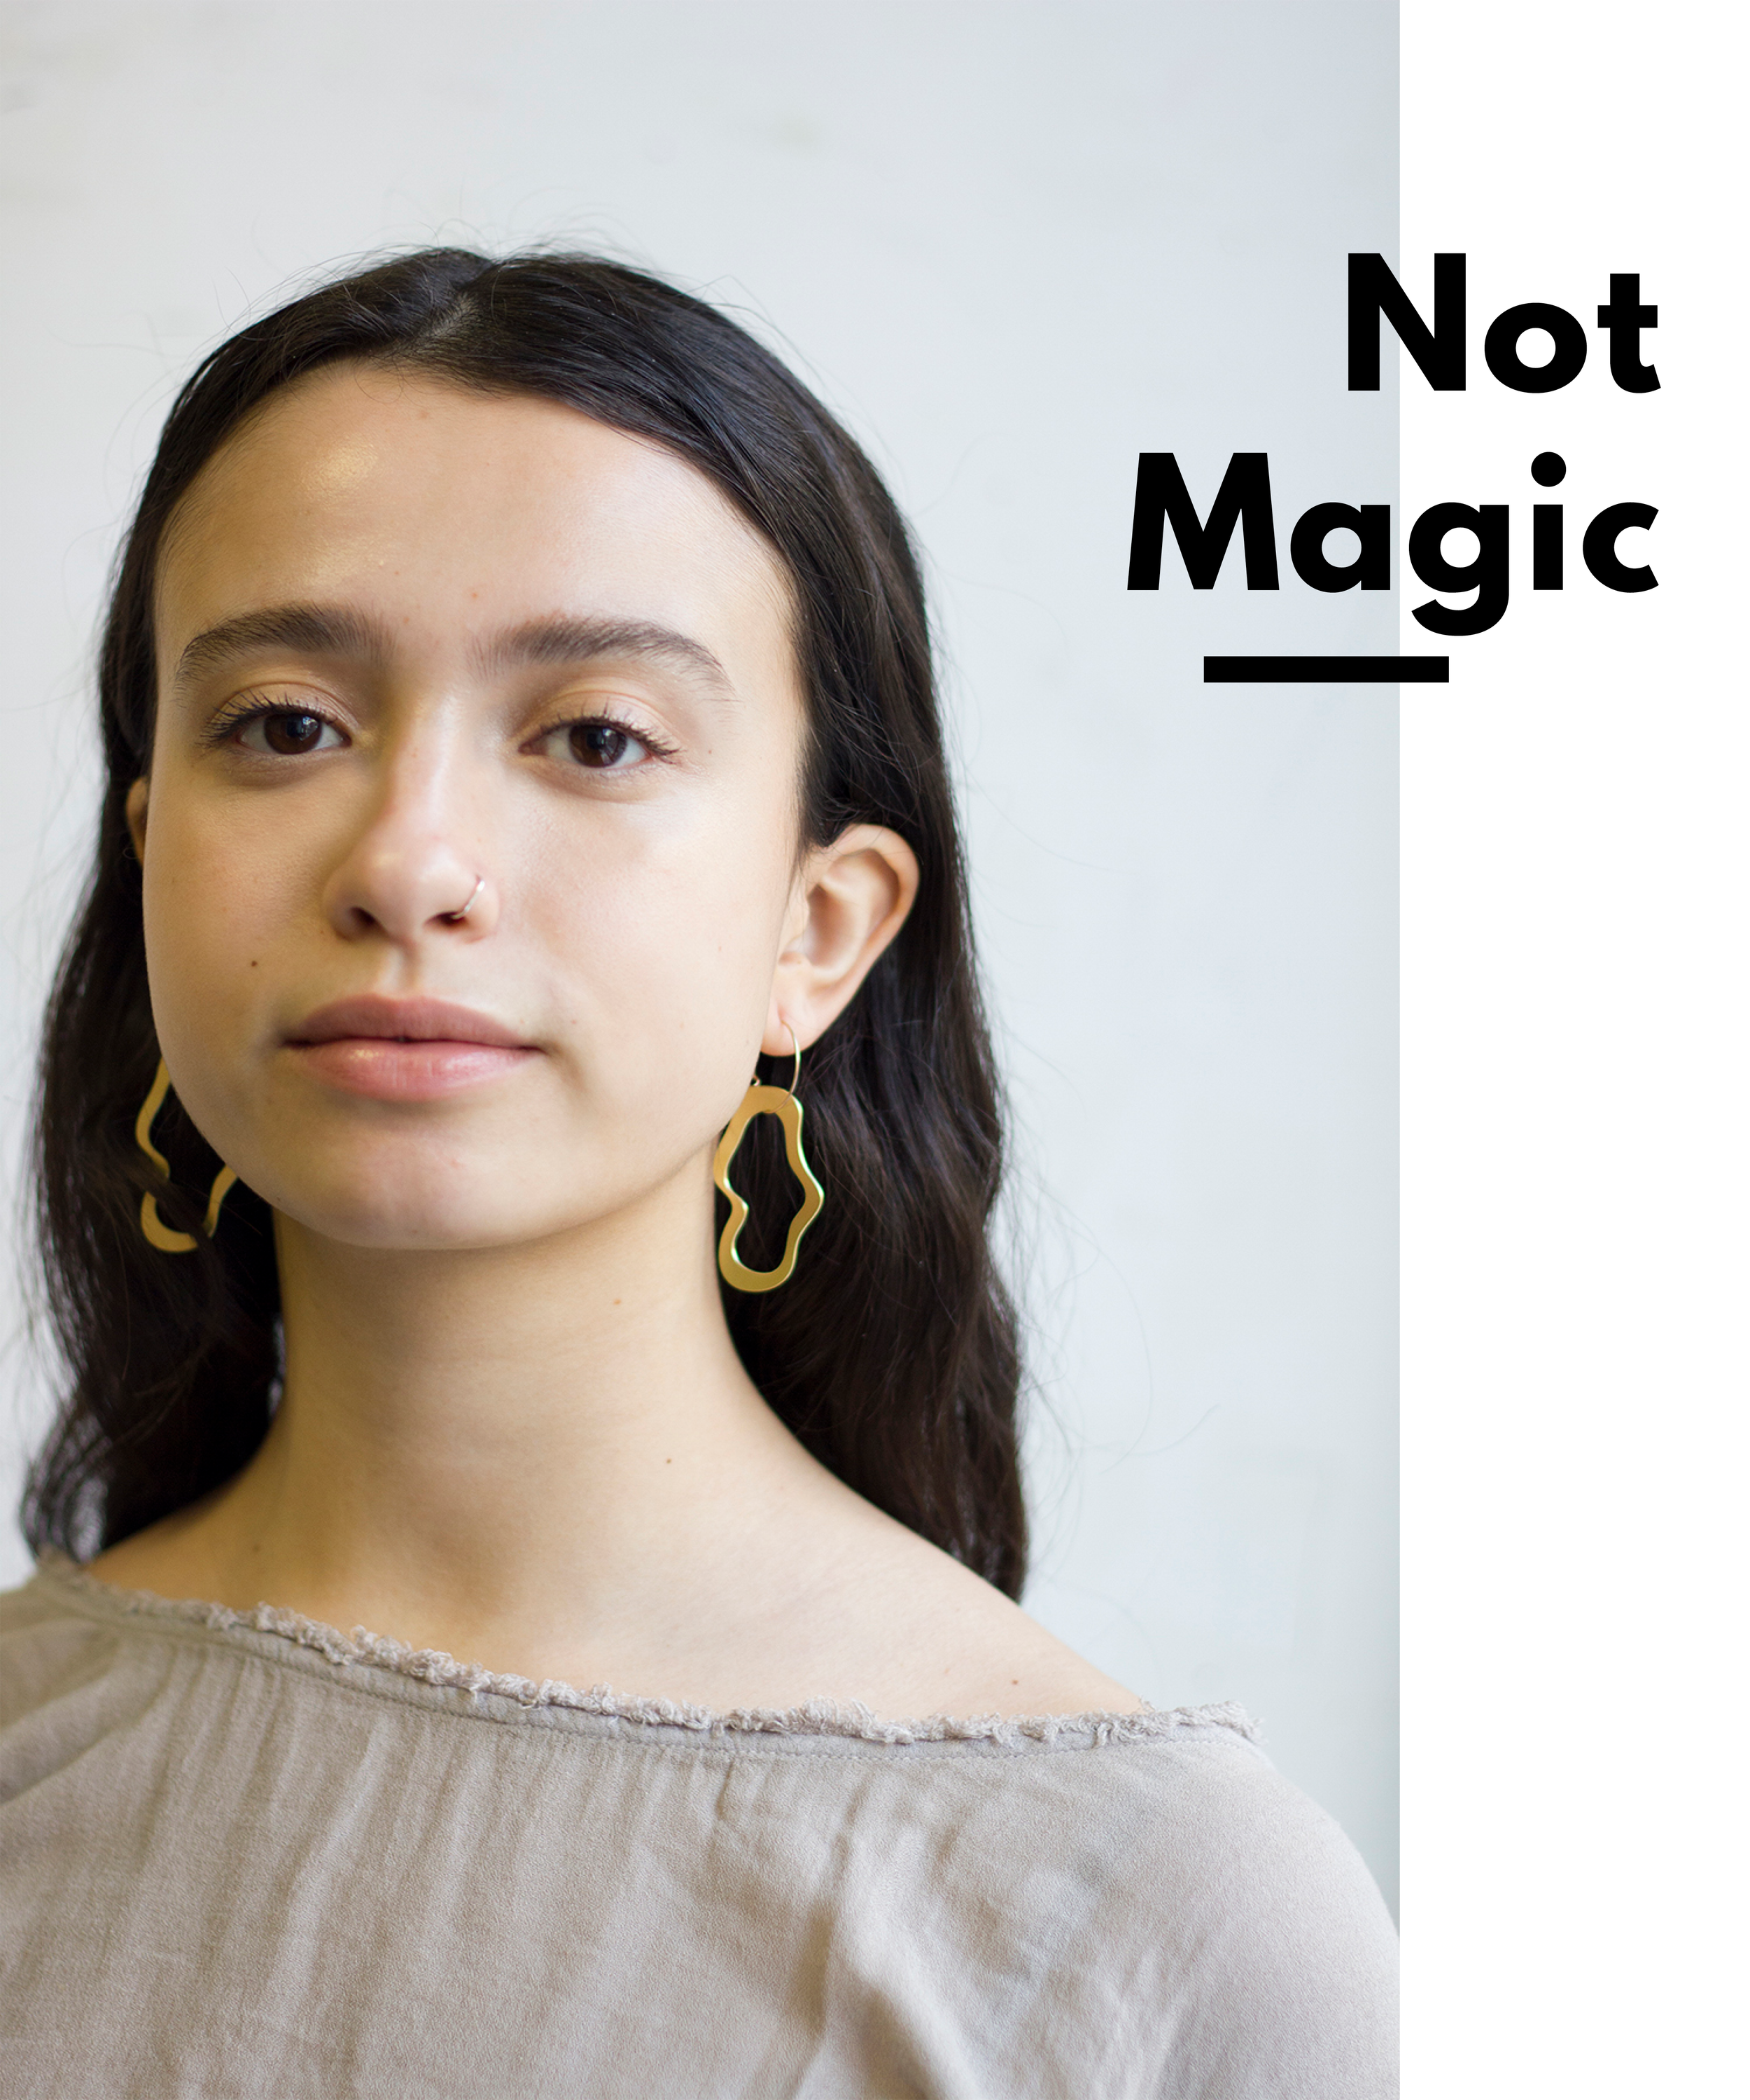 Shop Not Magic at the One of a Kind Show, March 27 - 31